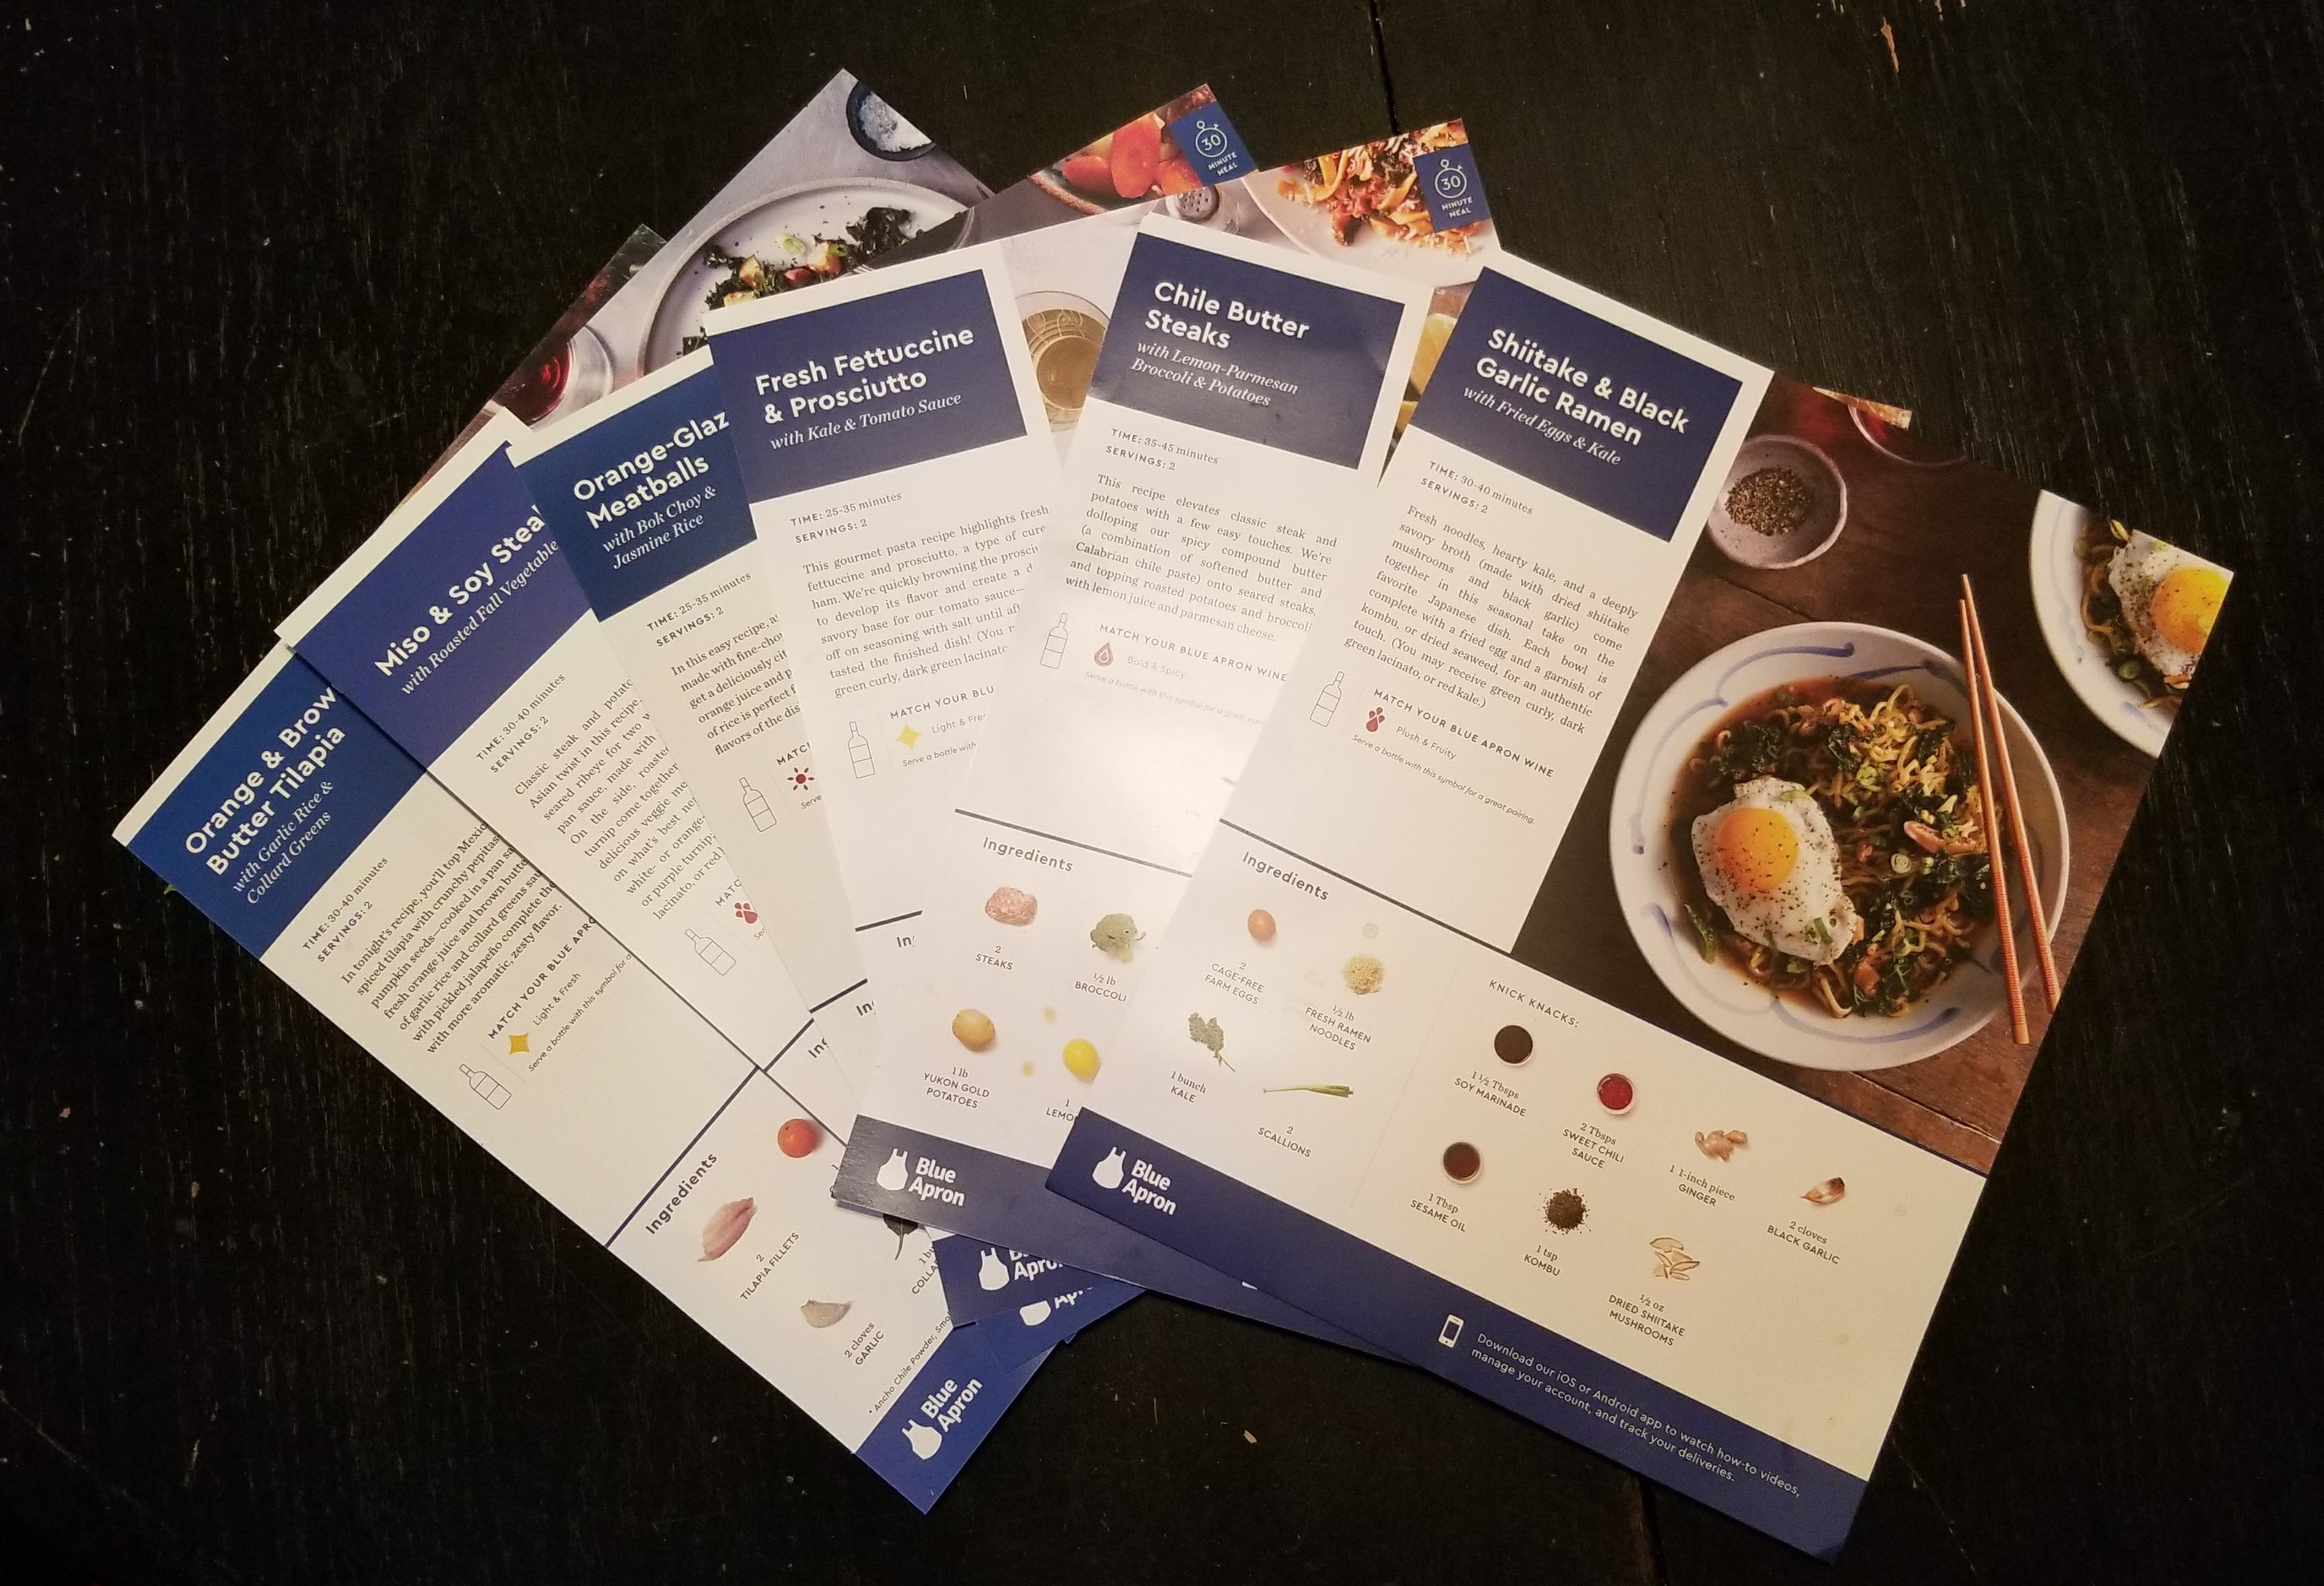 My Initial Experiences with Blue Apron